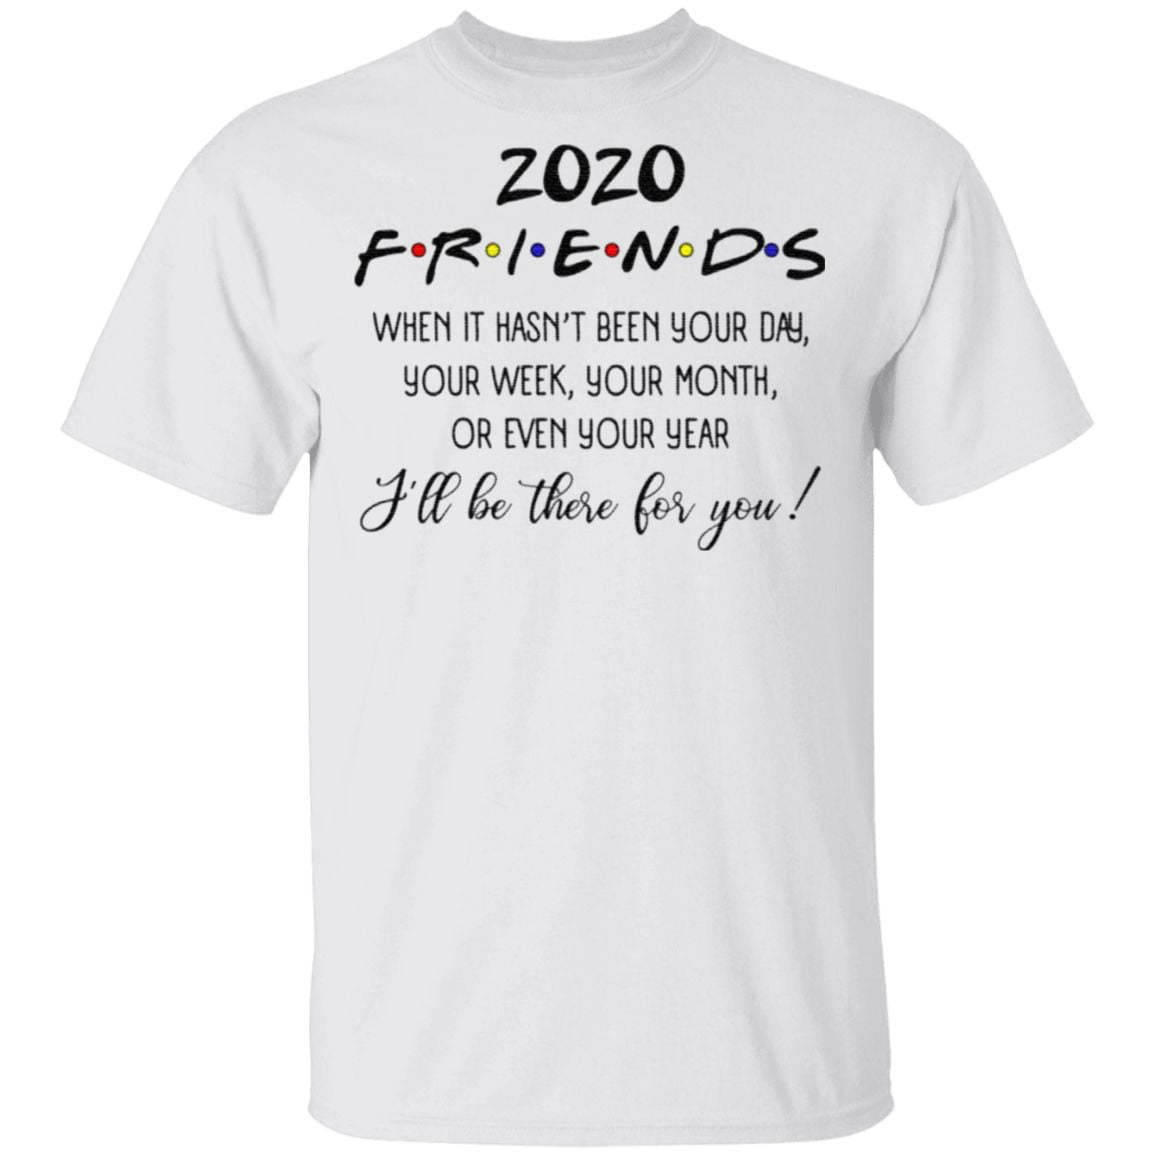 2020 Friends TV Show When It Hasn't Been Your Day Your Week I'll Be There For You Christmas Quarantined T-shirt